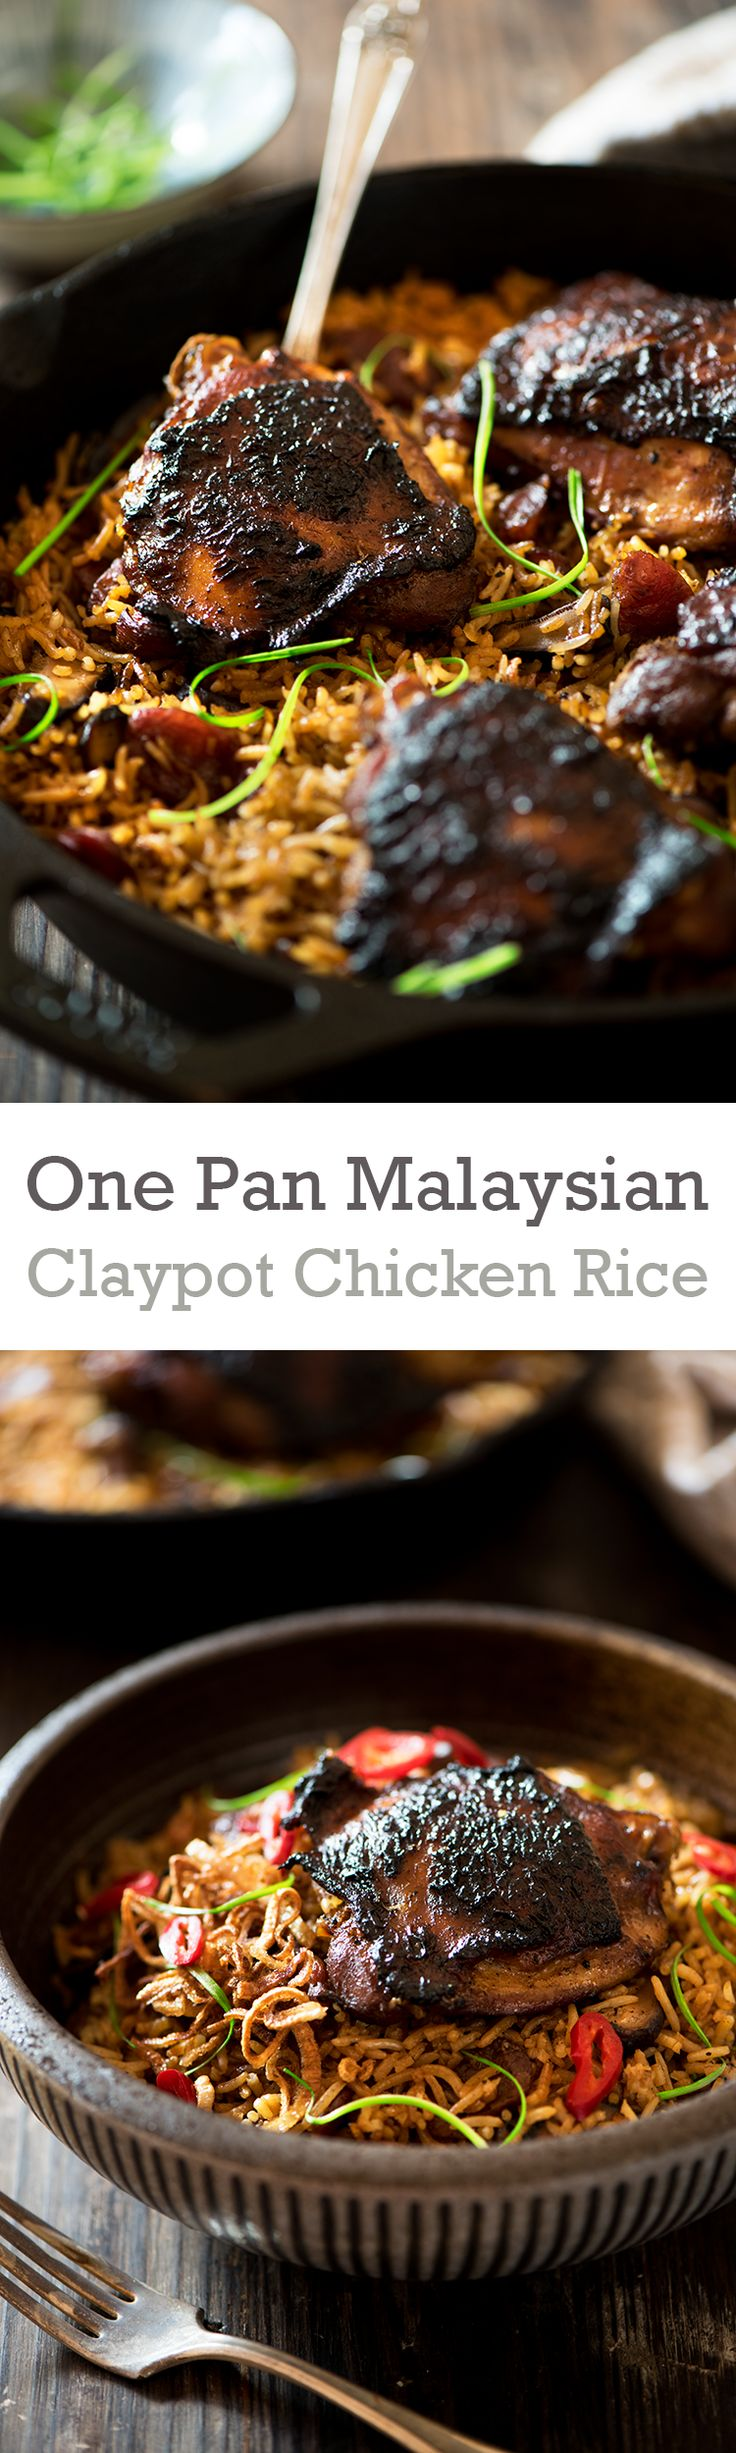 One Pan Malaysian Claypot Chicken Rice - Savory-sweet succulent marinated chicken, flavor boosting Chinese sausages, mushrooms and rice cooked in chicken broth.: